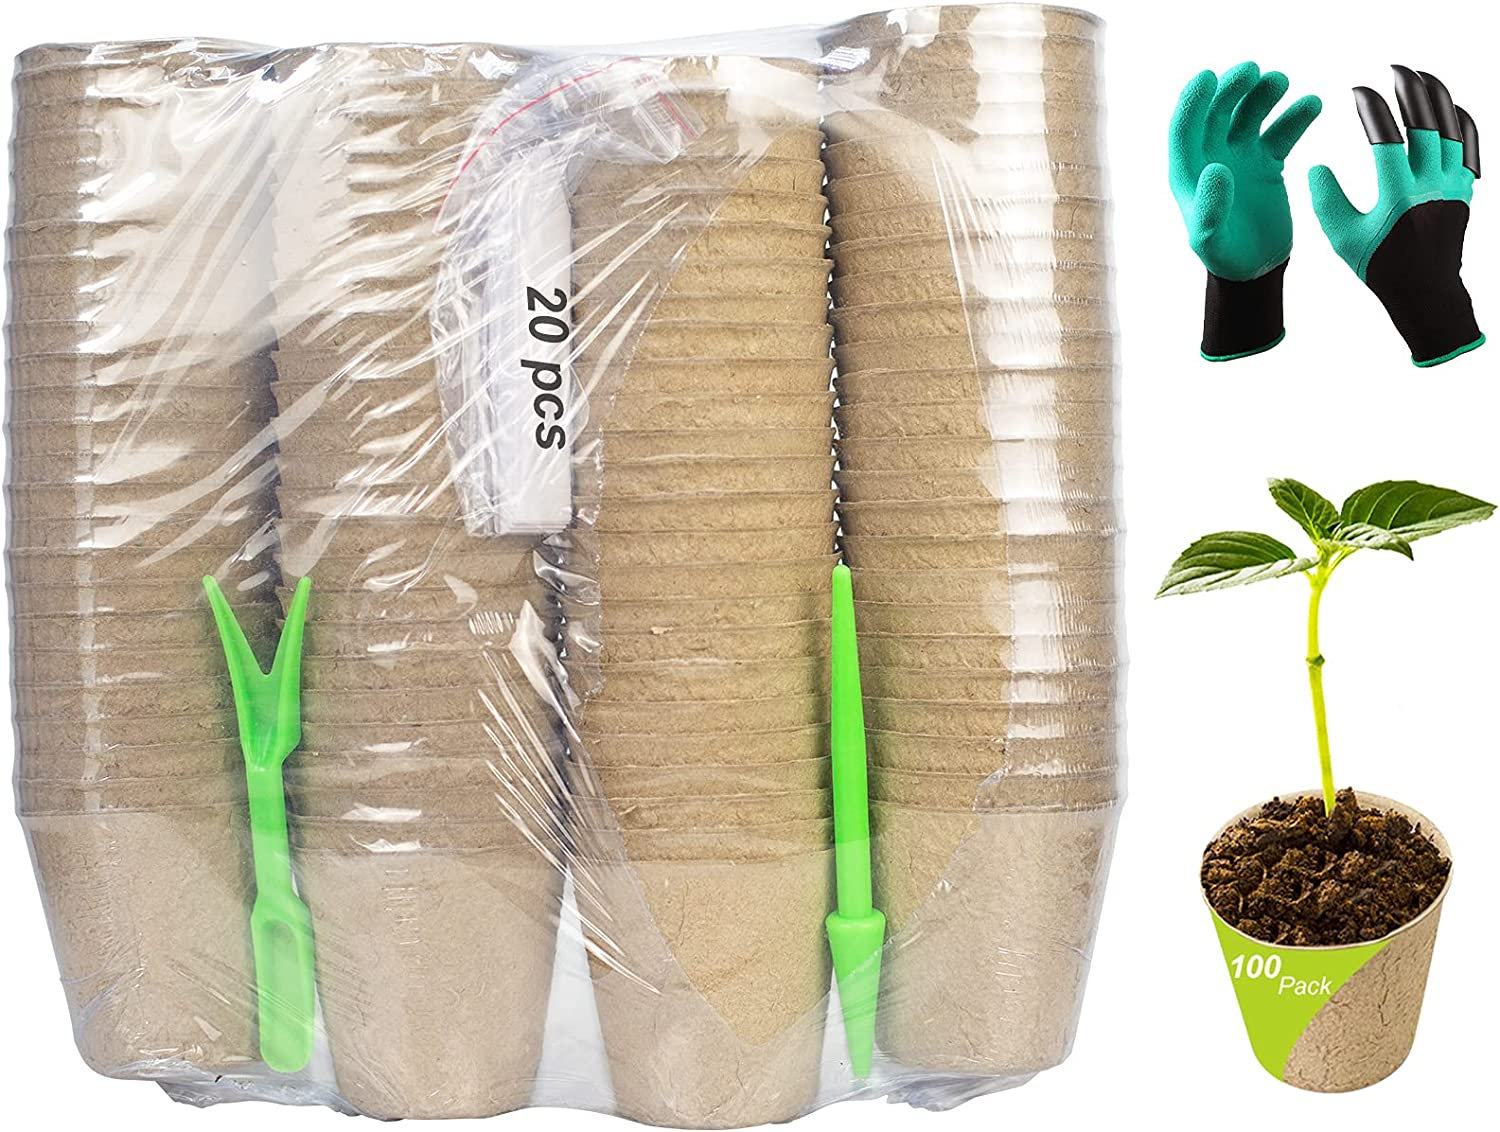 ARLBA 100 Pack 3 Inch Seed Starter Tray Peat Pots,Plant Starters for Vegetables/Flower Seedling,Biodegradable Herb Seed Starter Pots Kits,Garden Germination Nursery Pot W/20 Markers,Gloves & Tool kits